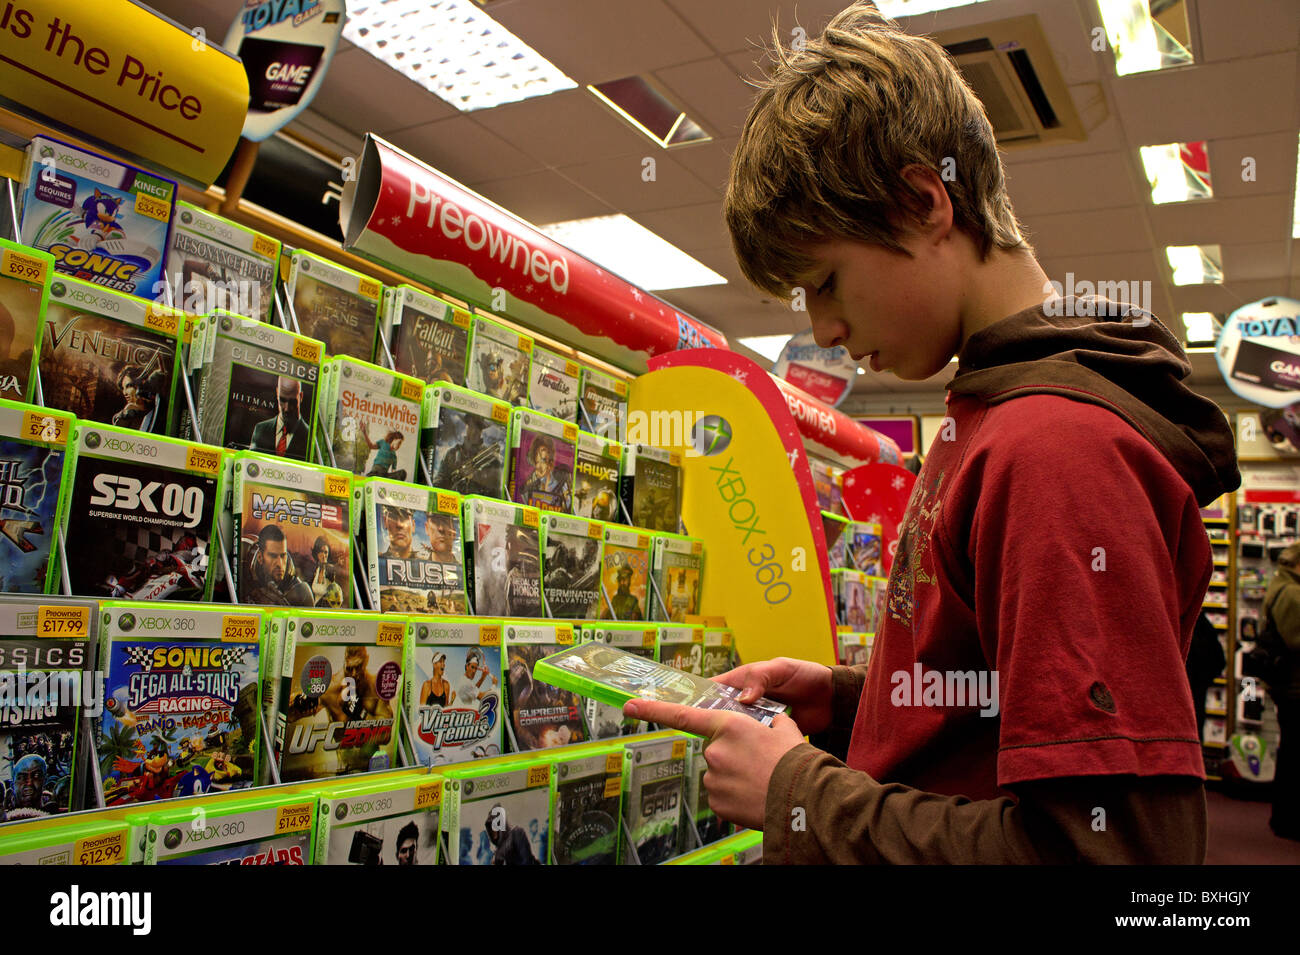 A teenage boy looking at computer games in a Game shop  UK. A teenage boy looking at computer games in a Game shop  UK Stock